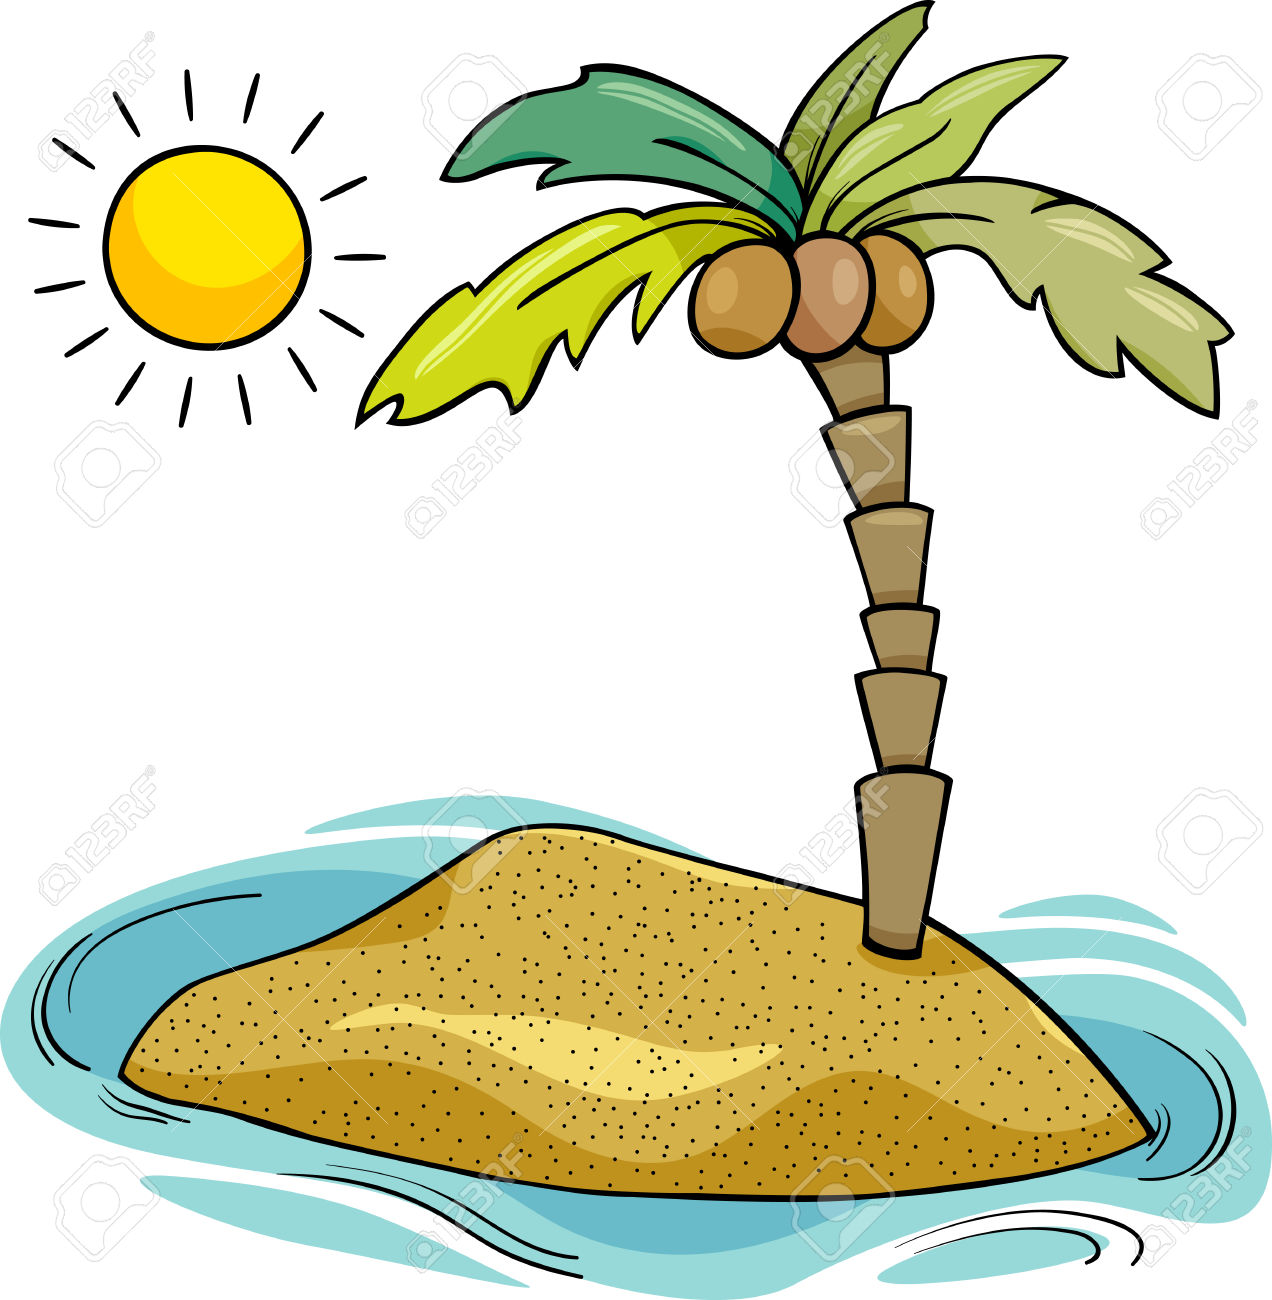 Free download best on. Island clipart desserted